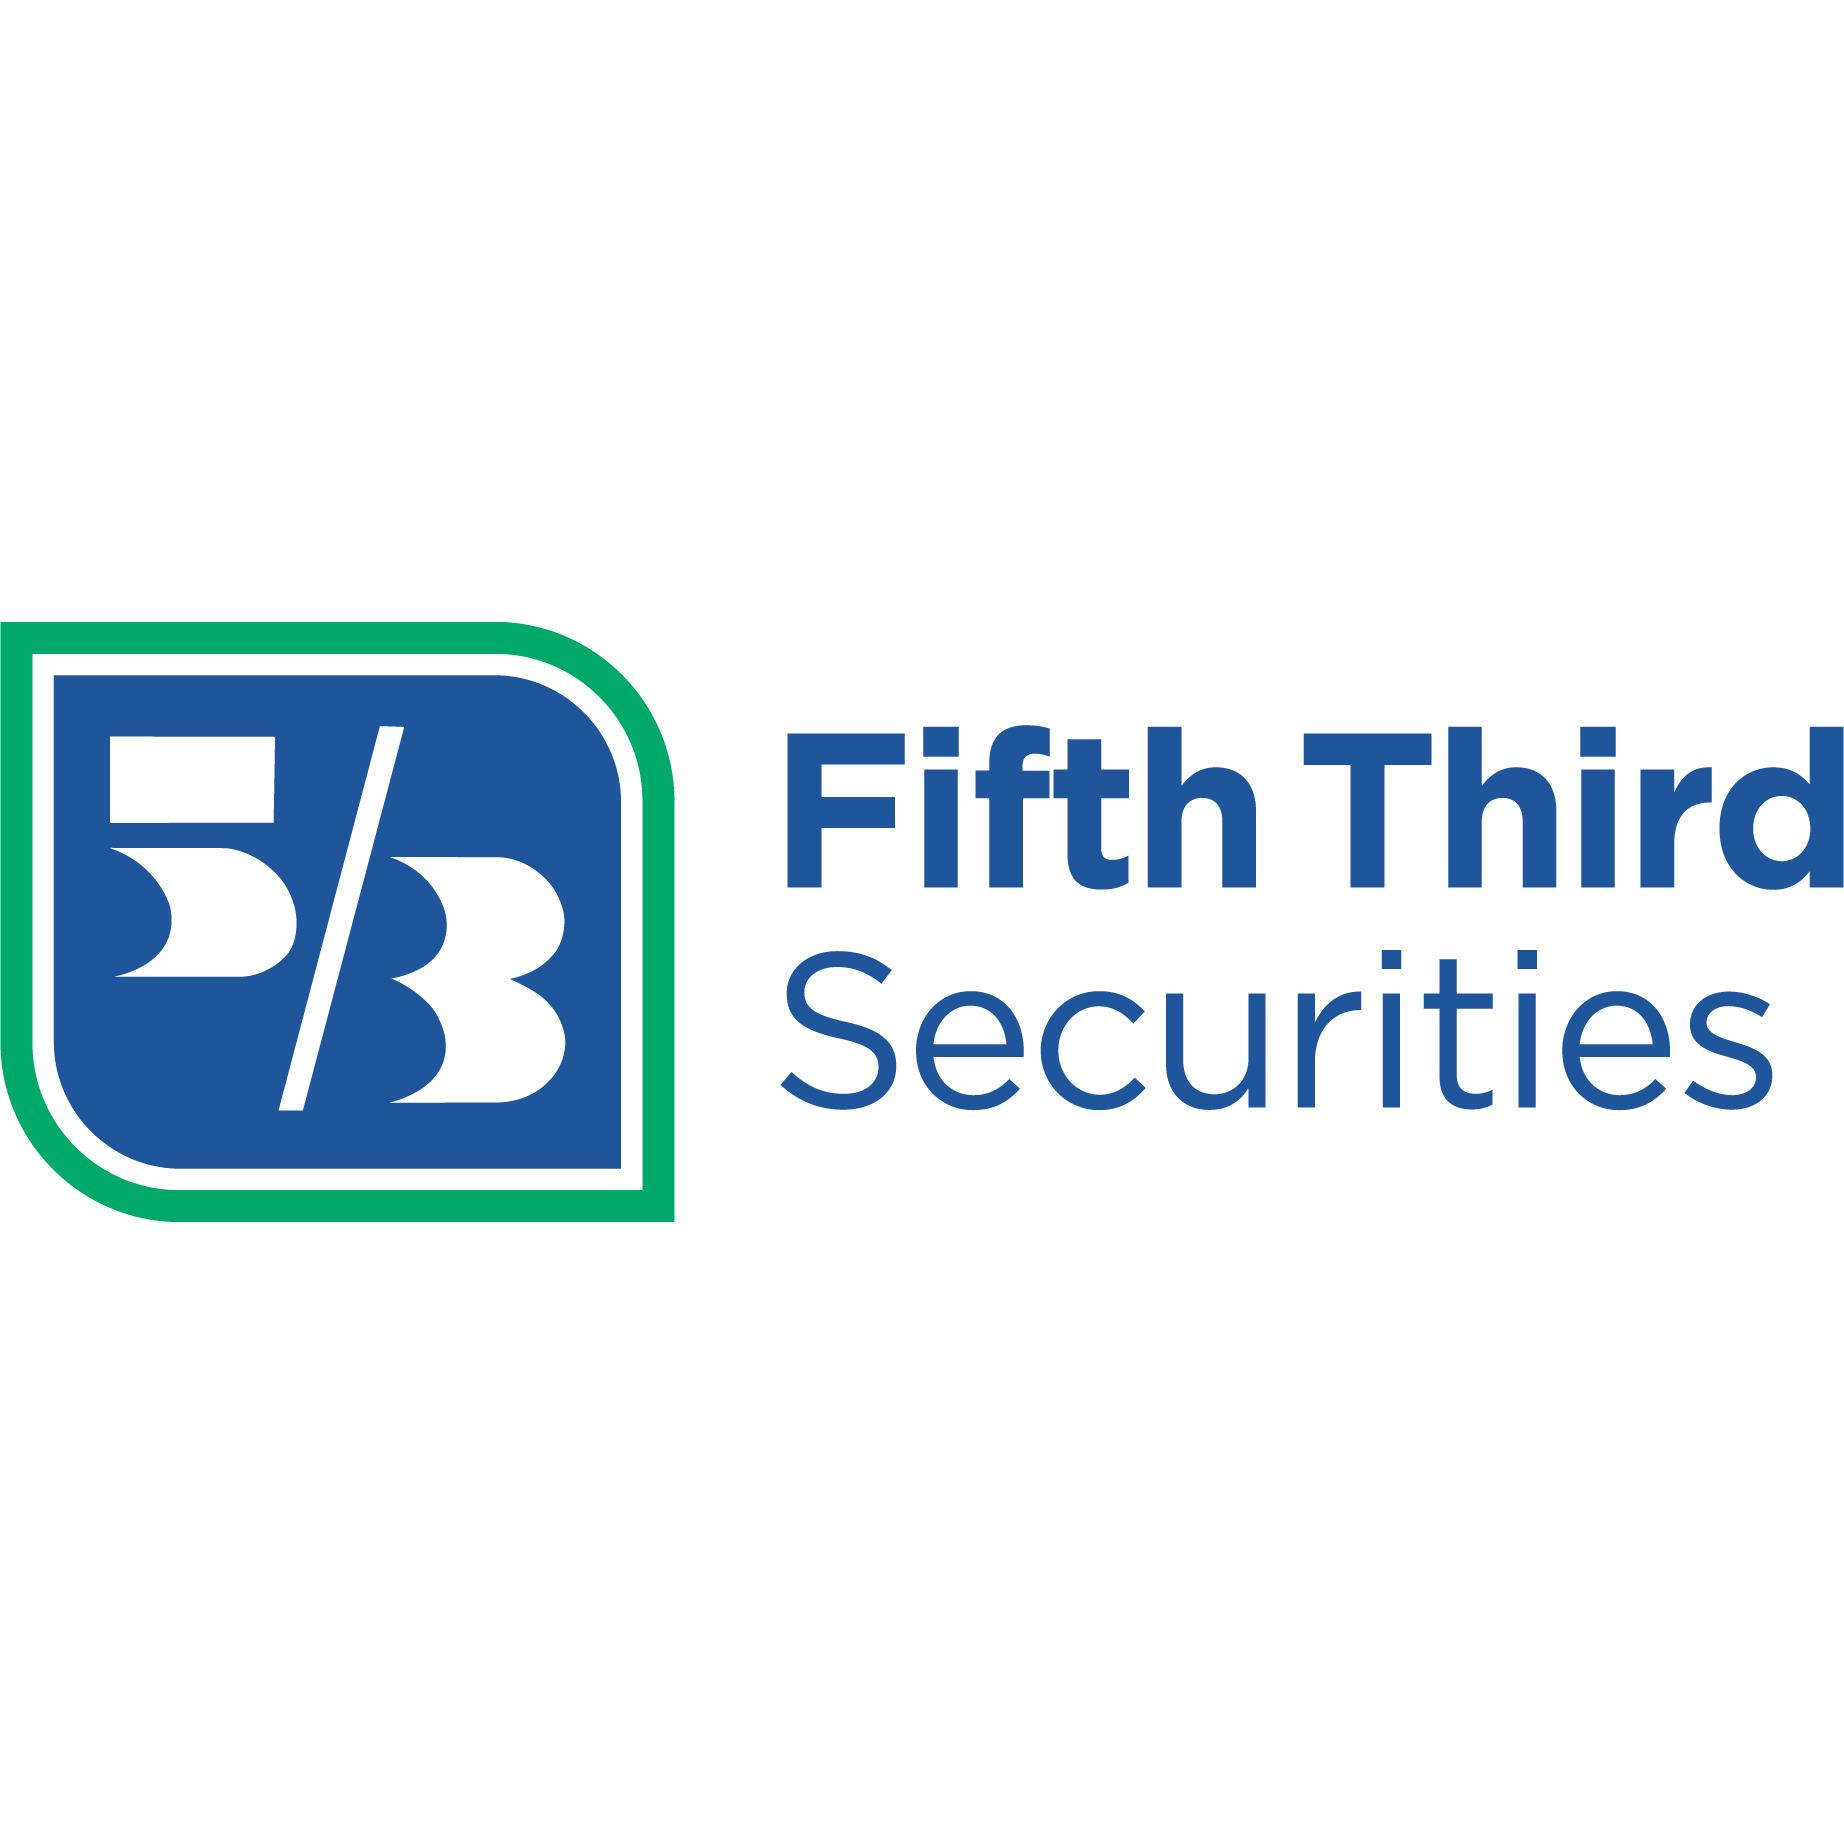 Fifth Third Securities - Gregg Eicholtz